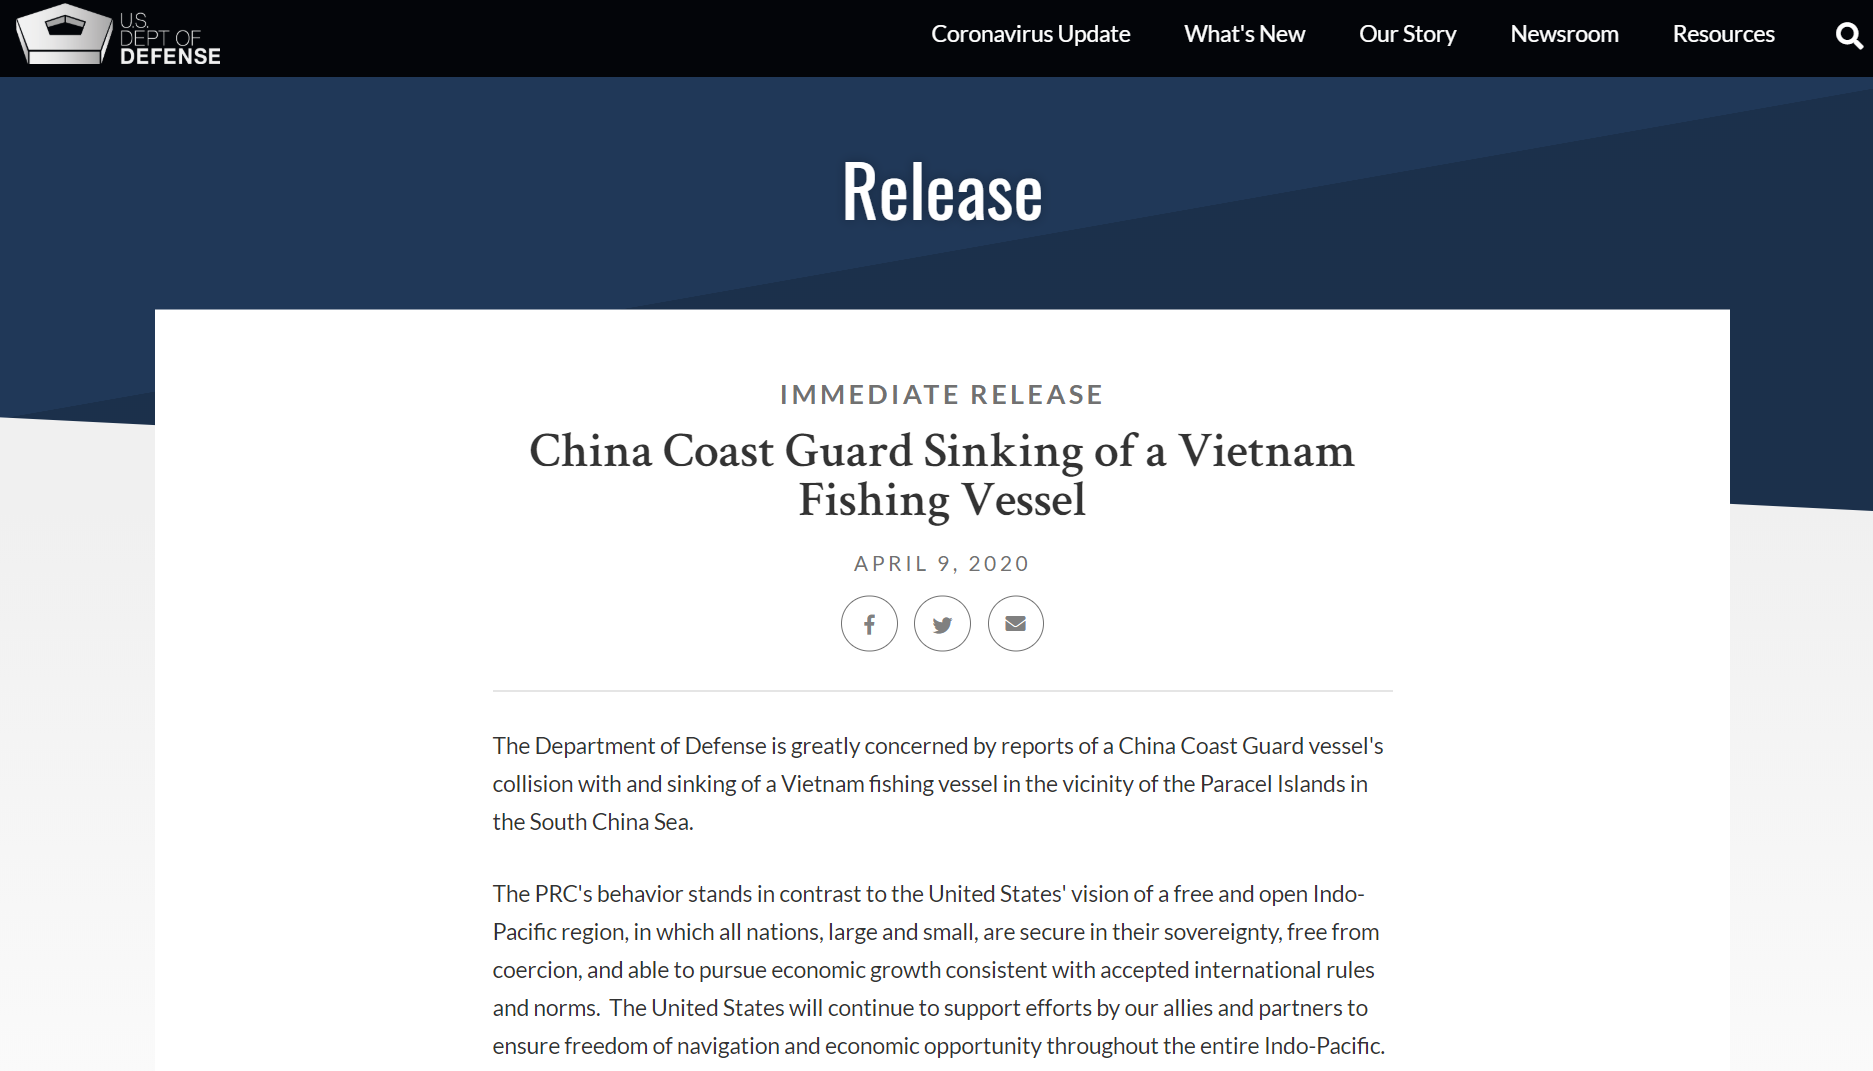 US Defense Department 'greatly concerned' by China's sinking of Vietnamese fishing boat